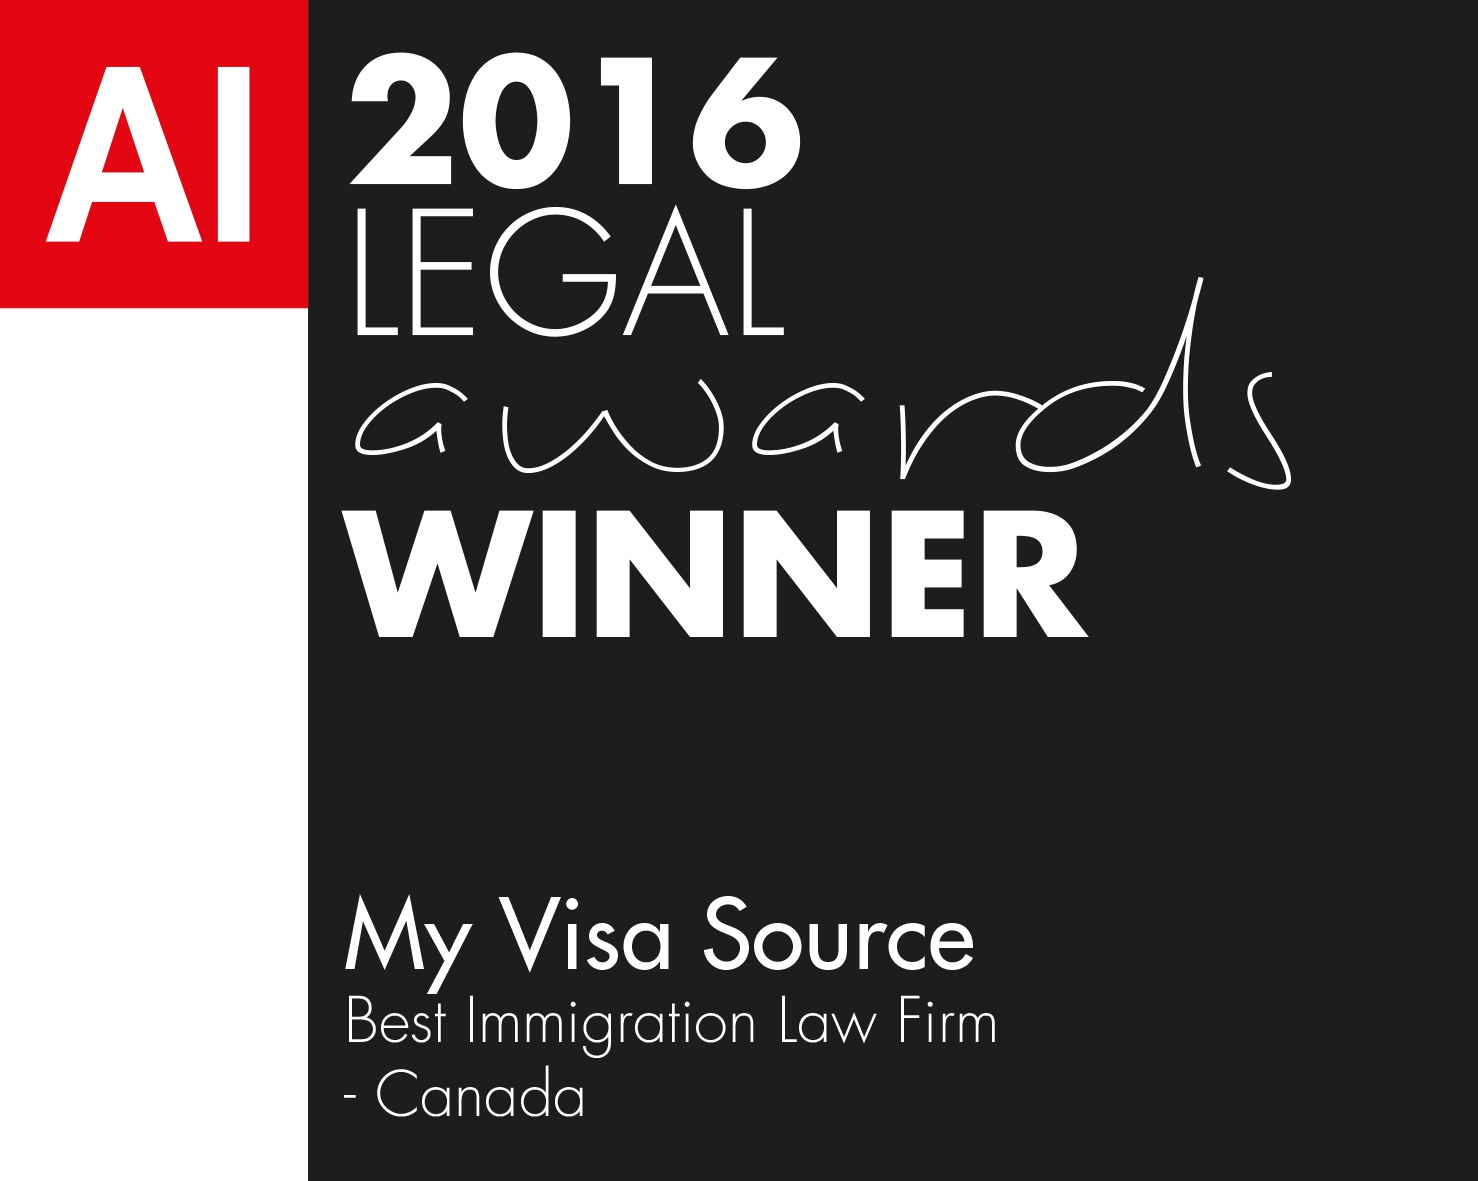 Best Immigration Law Firm - Canada